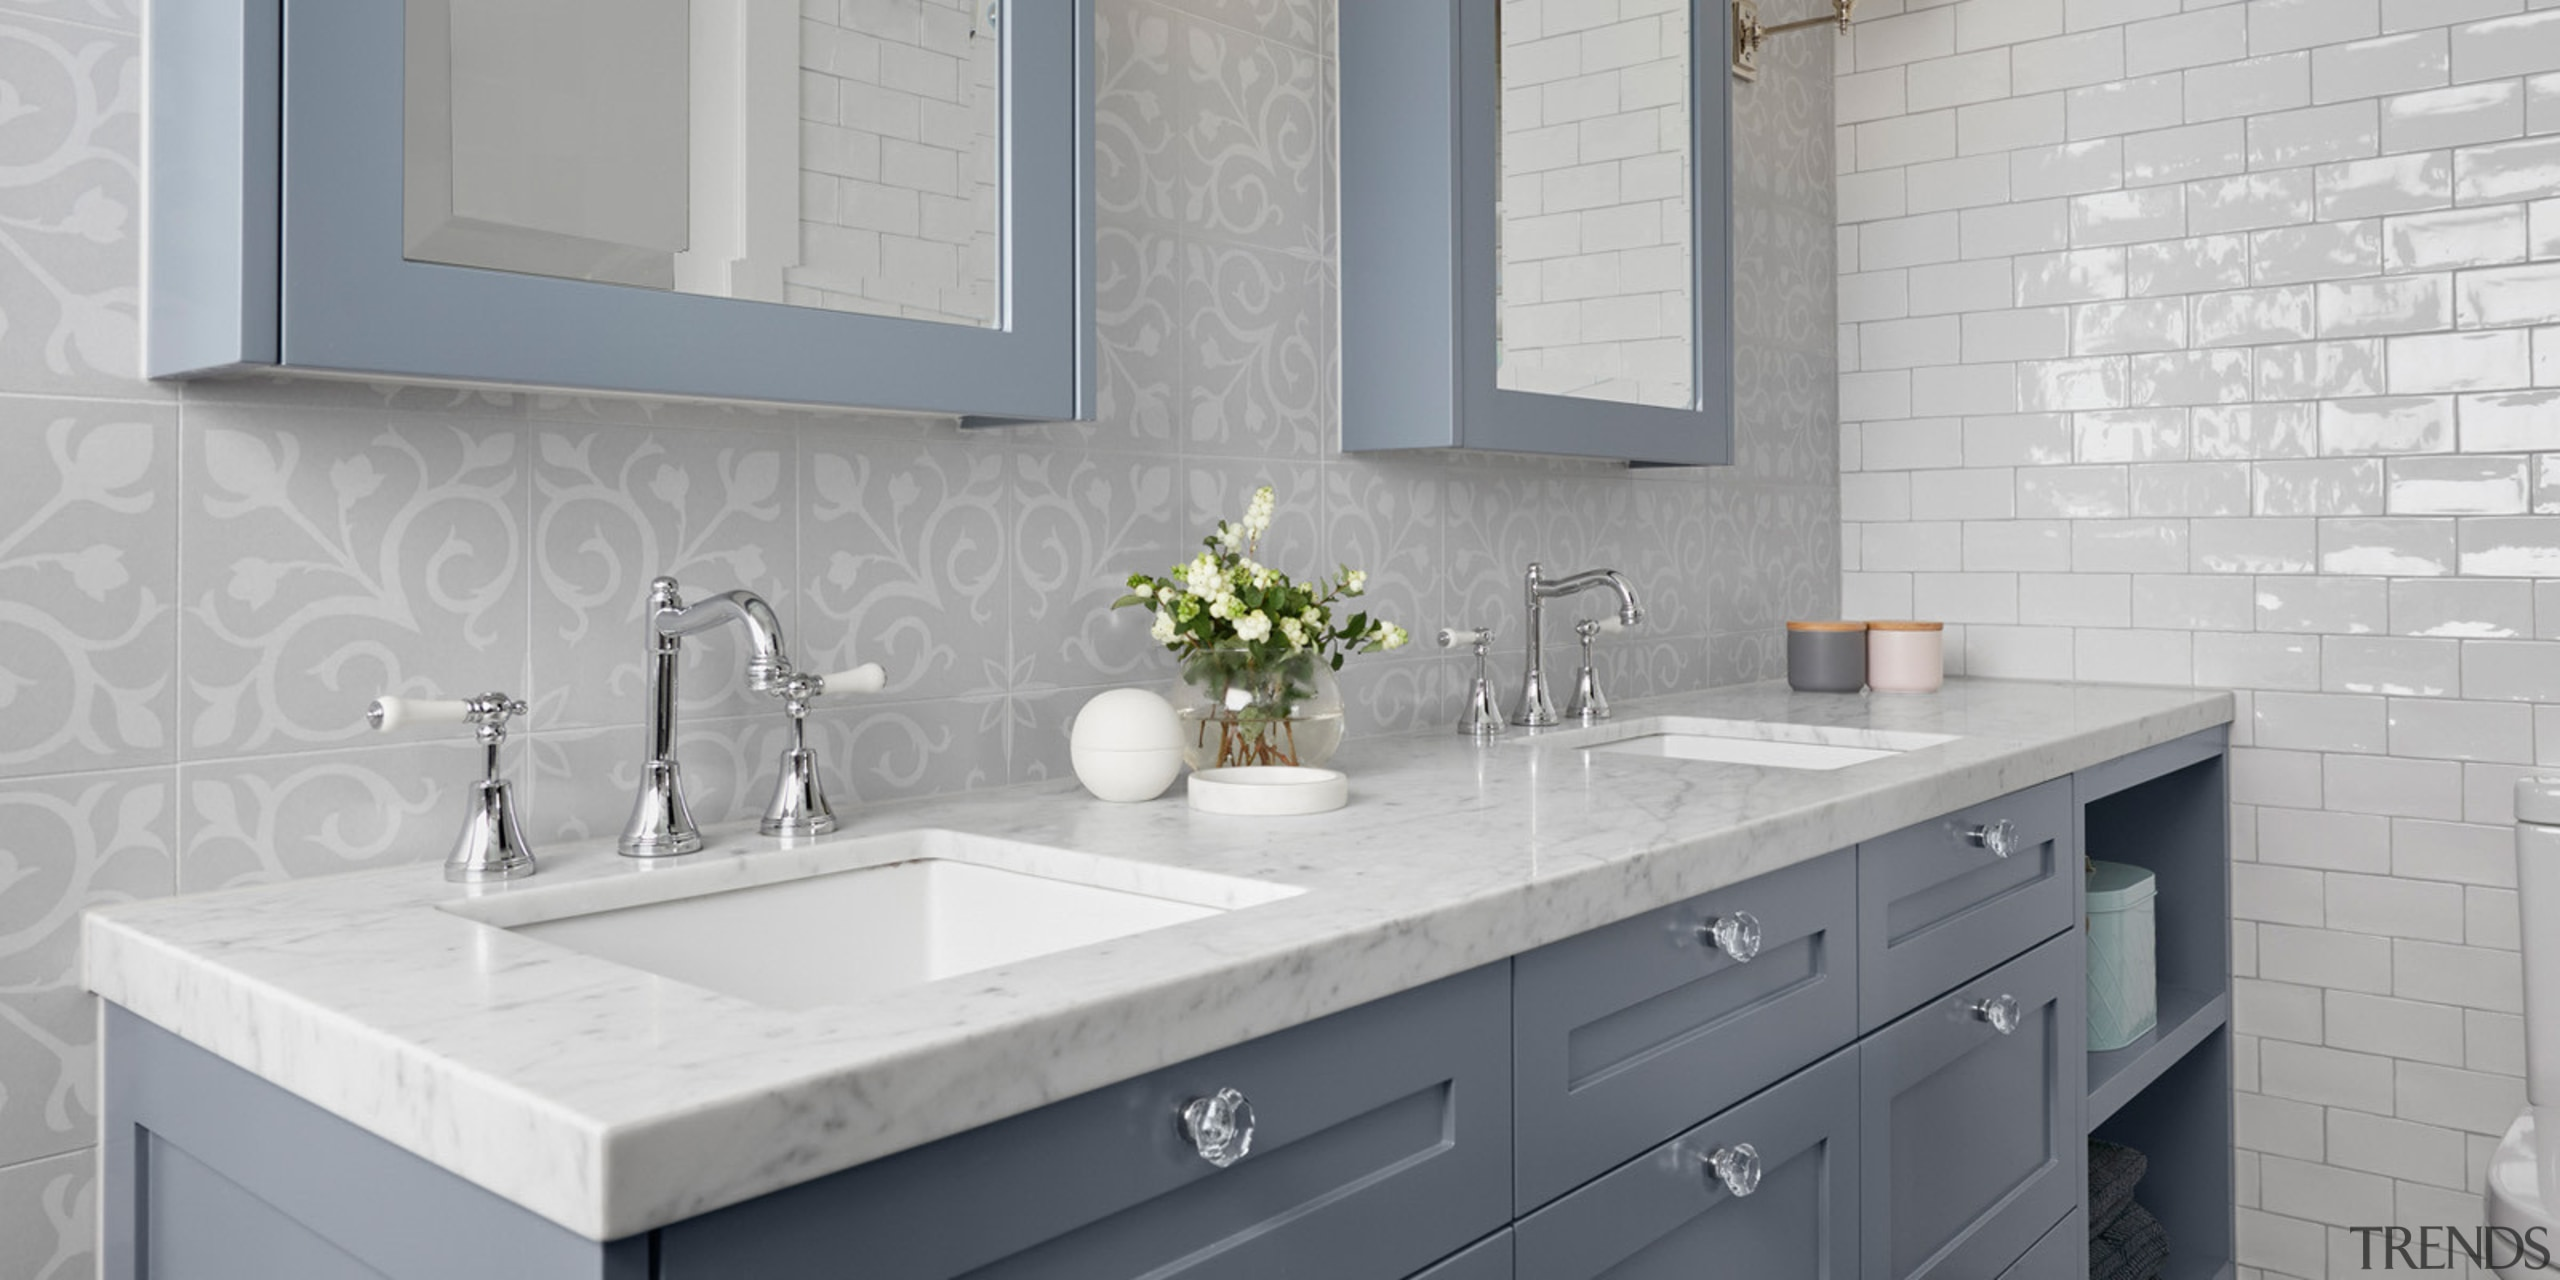 There are many pitfalls to avoid when creating bathroom, bathroom accessory, bathroom cabinet, countertop, floor, flooring, granite, home, interior design, kitchen, room, sink, tap, tile, wall, gray